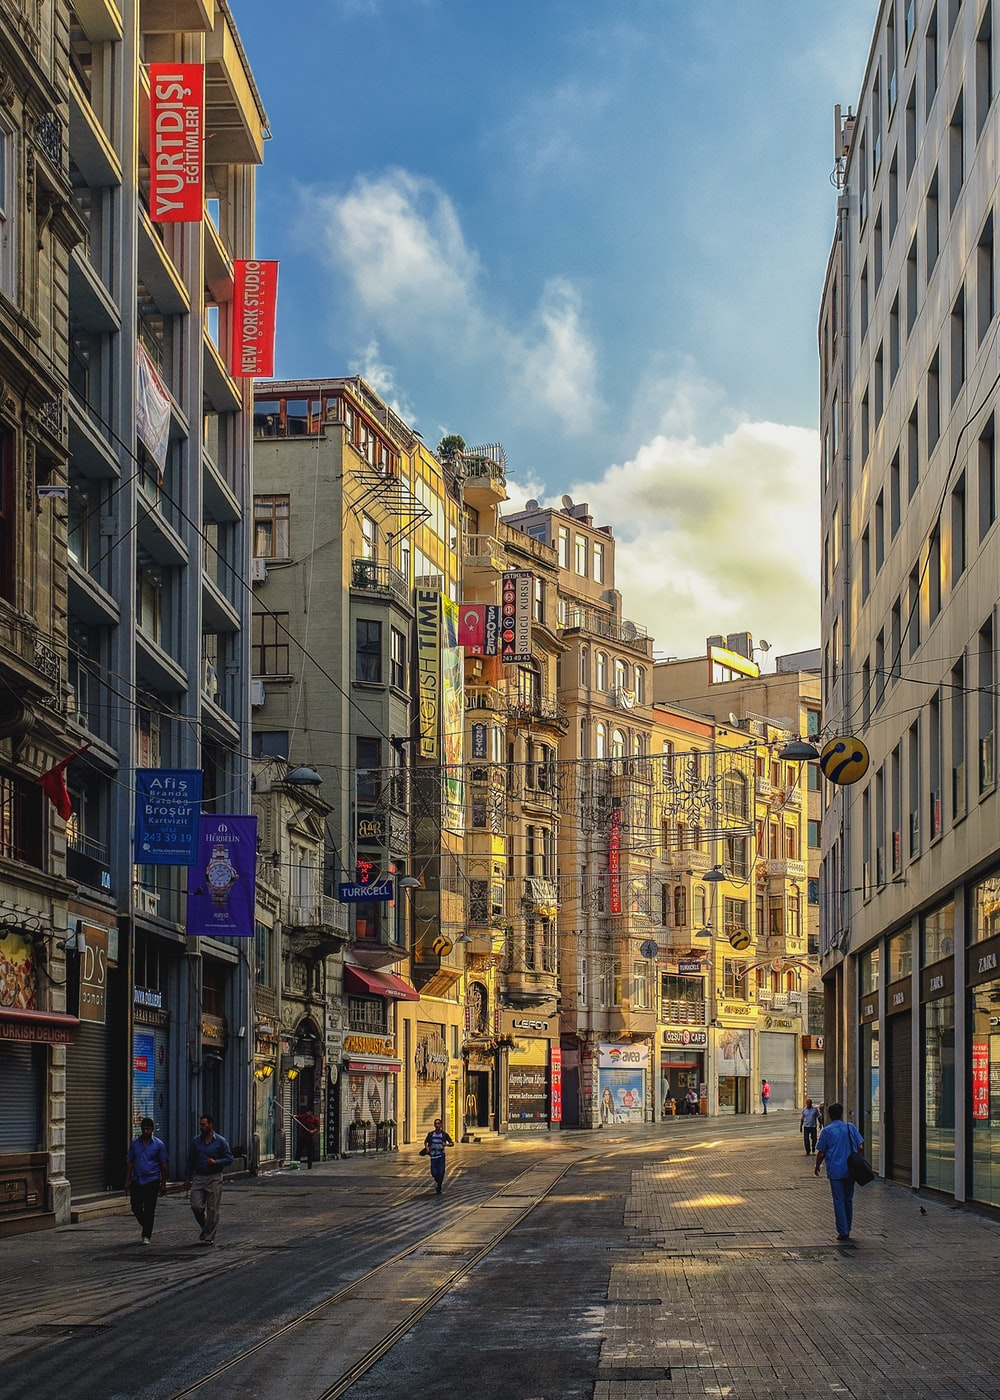 people walking on alley surrounded with buildings artwork